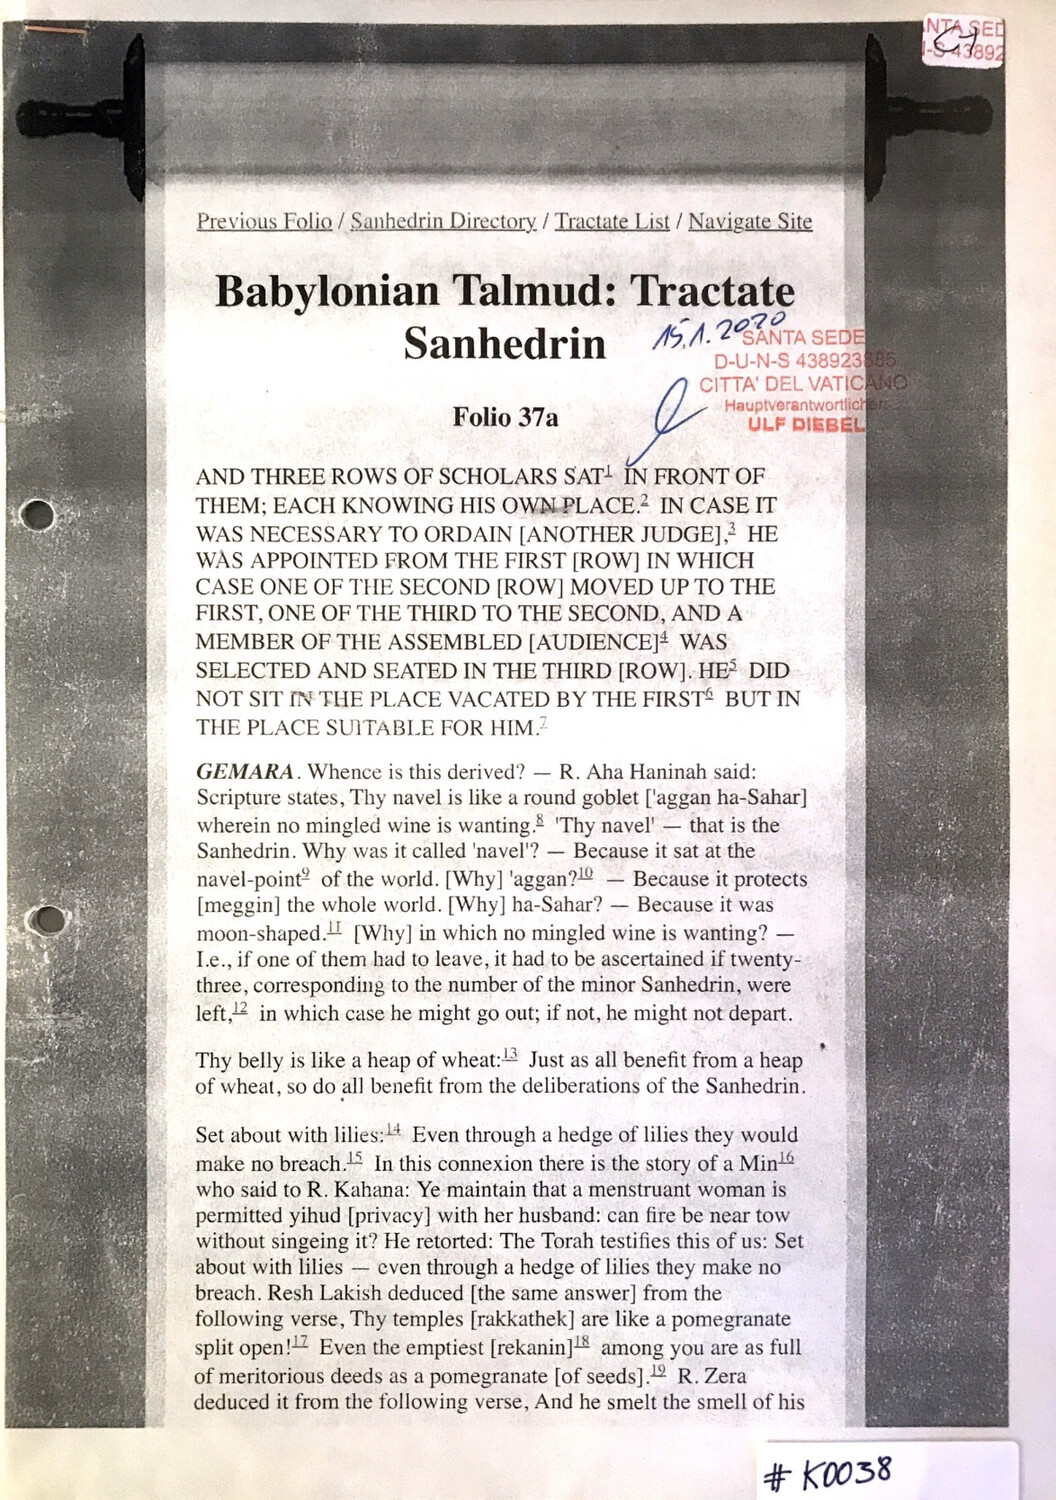 #K0038 l Babylonian Talmud: Tractate Sanhedrin